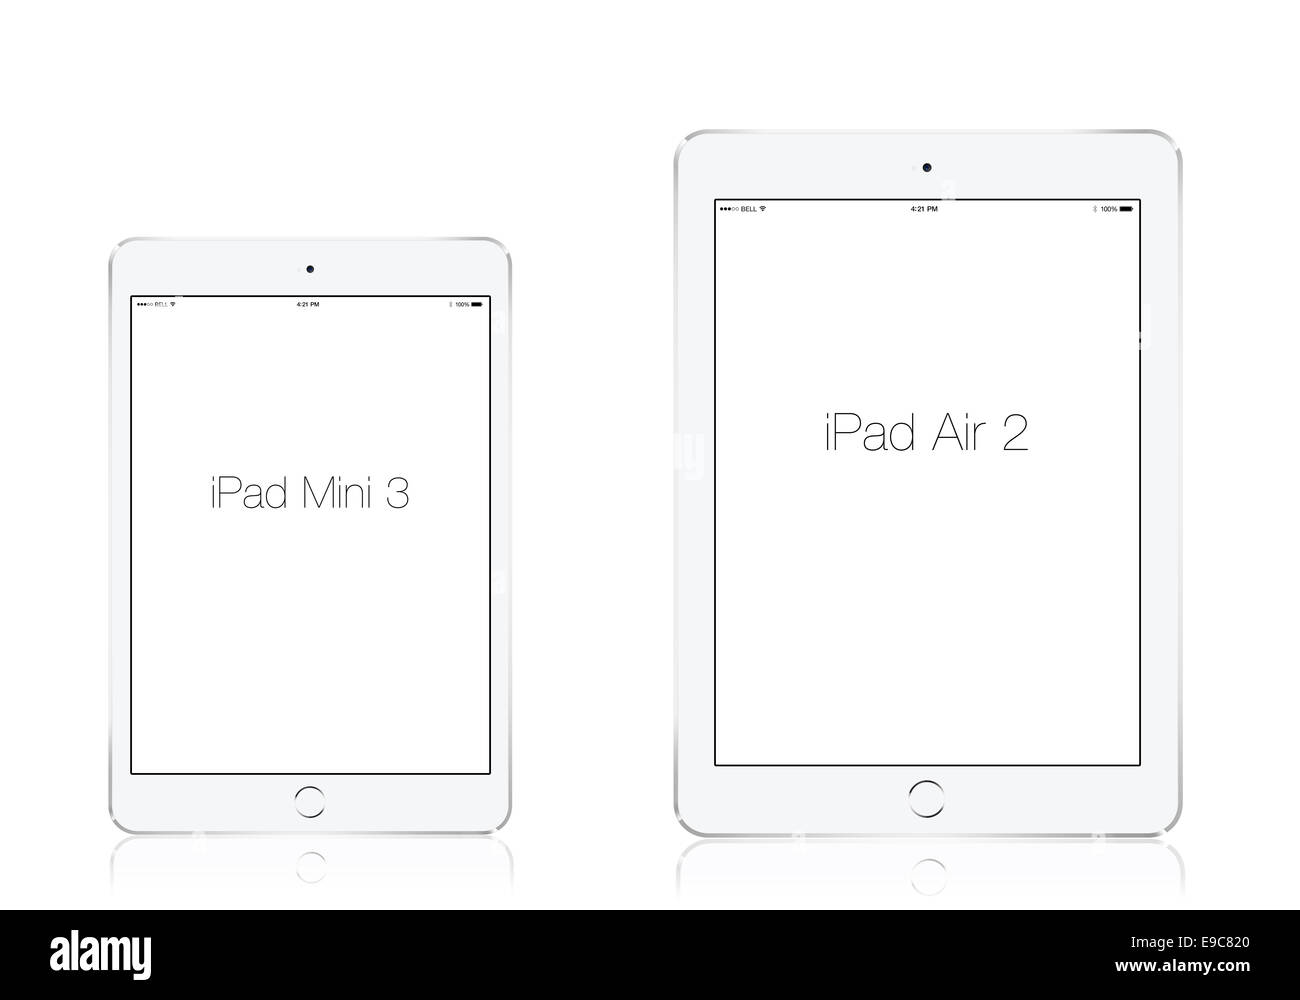 Tablets iPad mini 3 and iPad air 2 silver, digitally generated artwork. - Stock Image